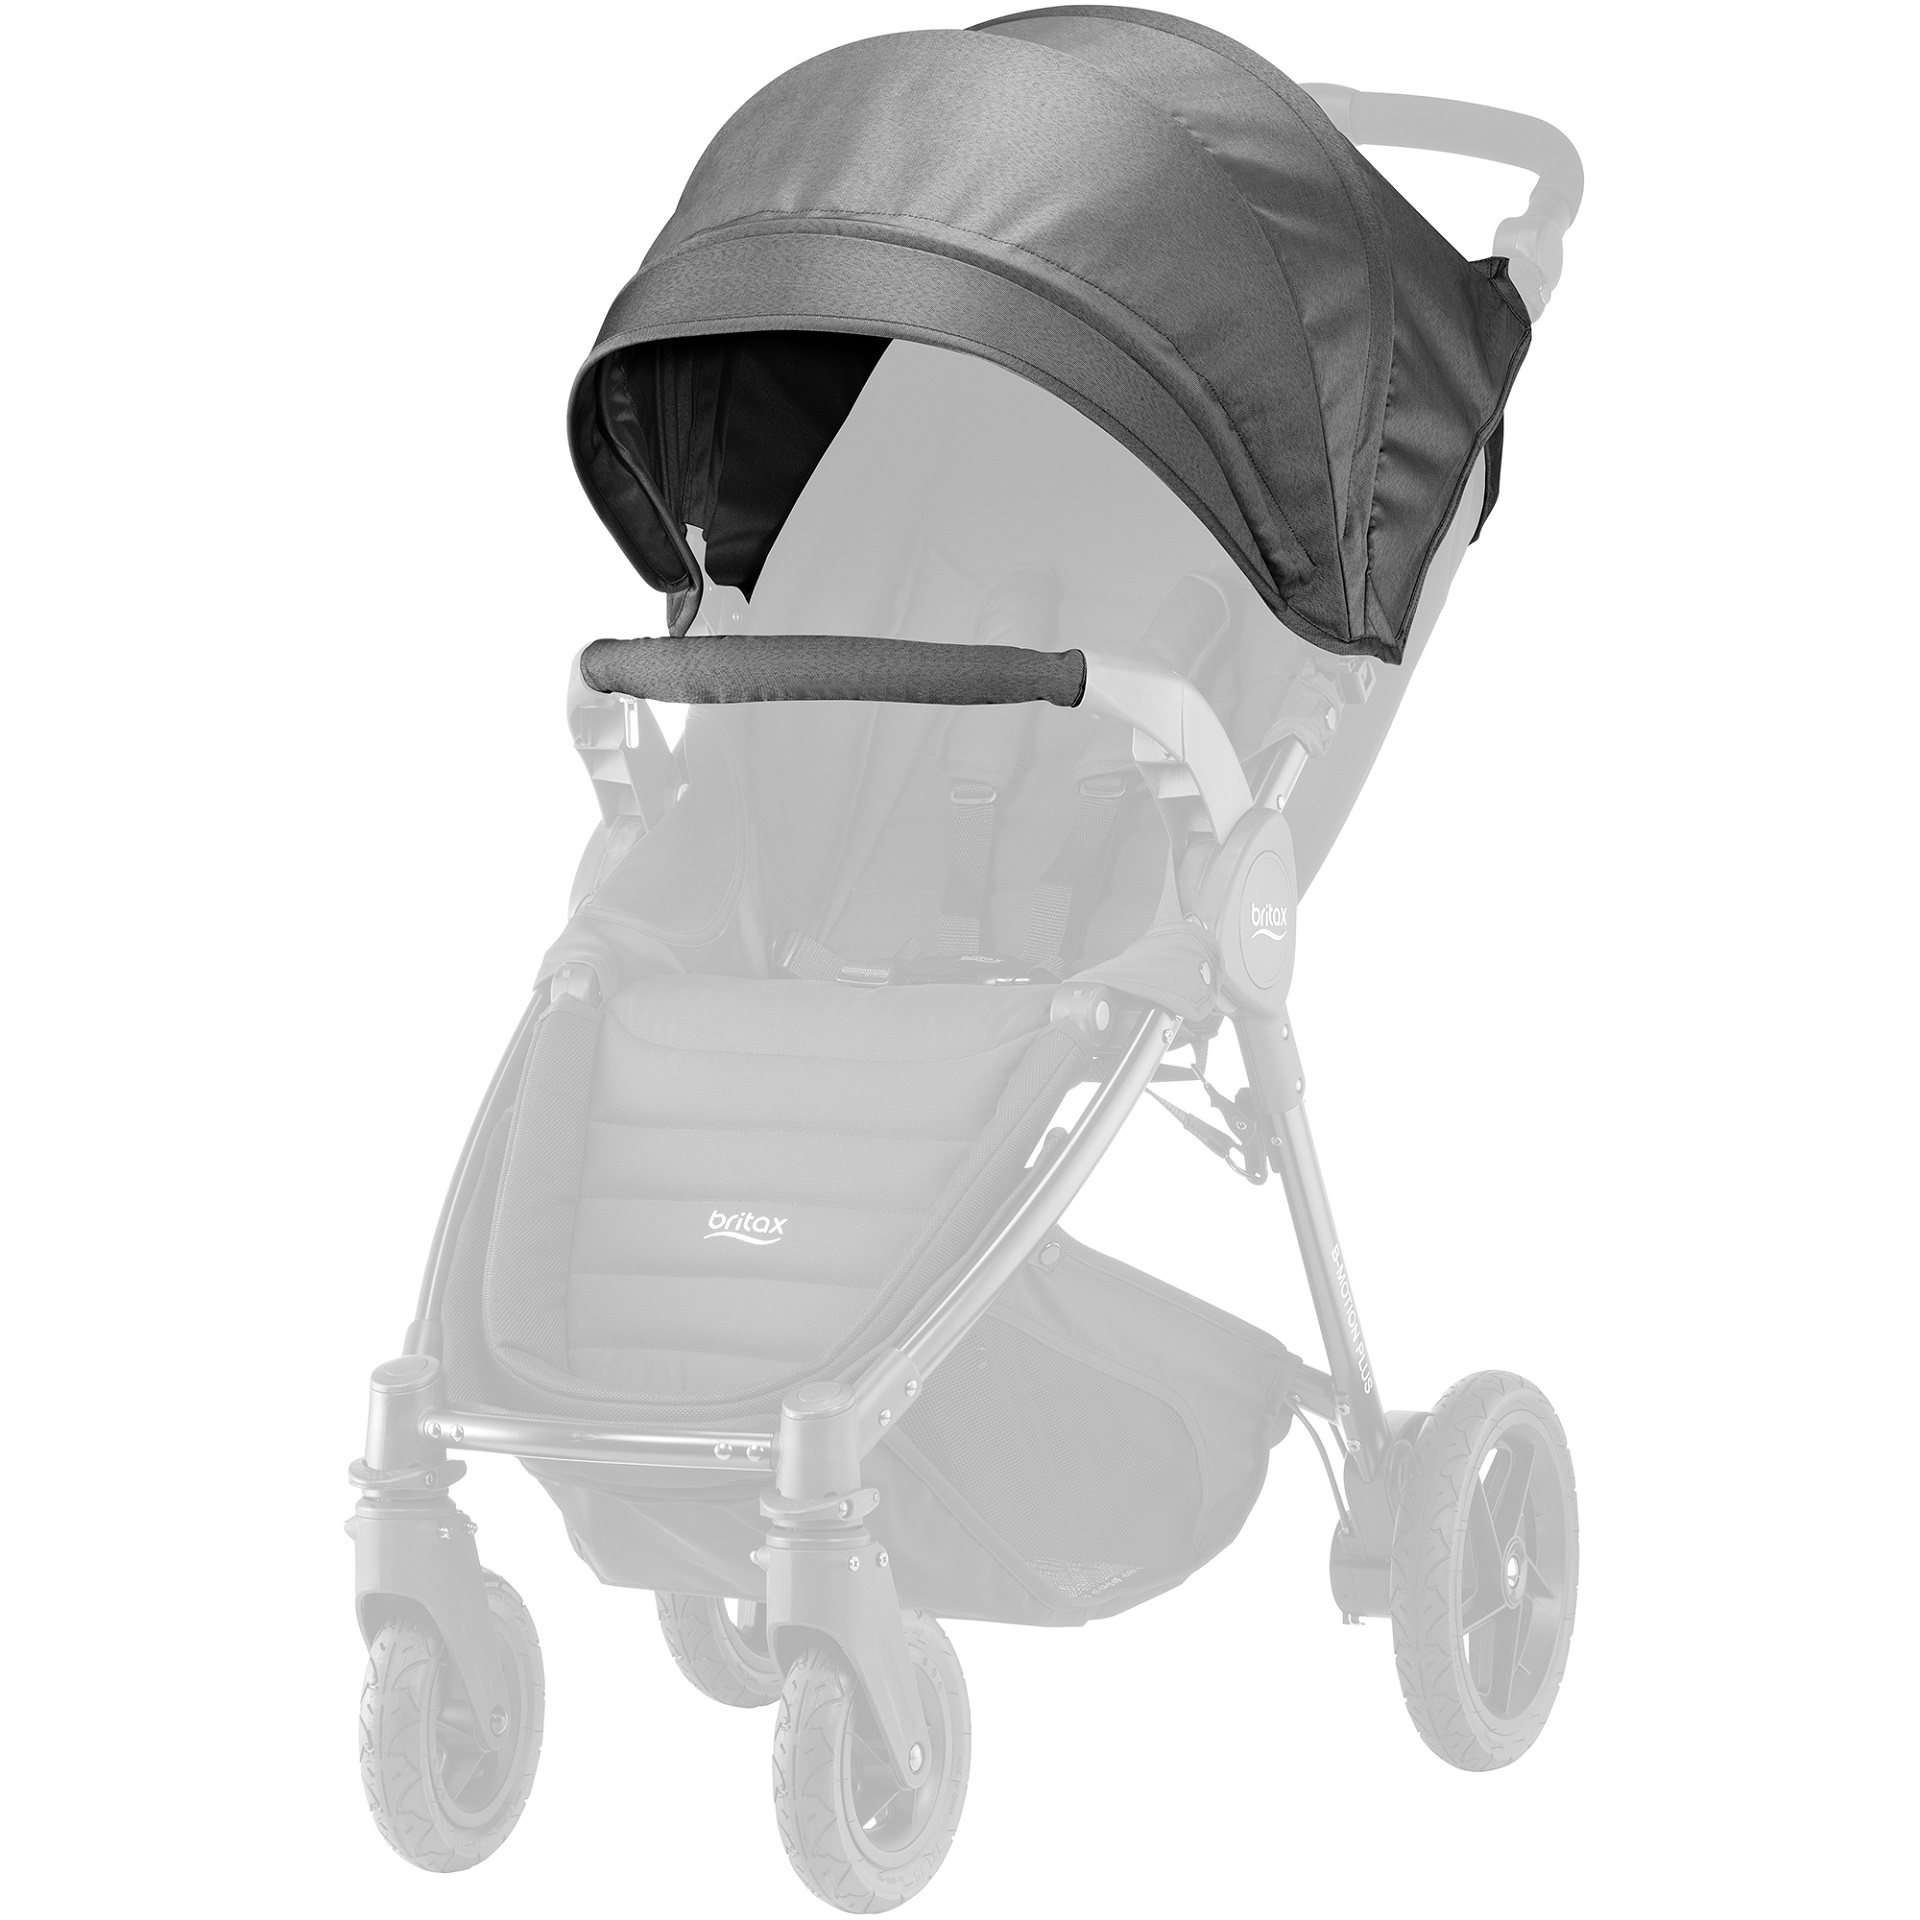 Windscreen Denim-Collection Britax B-Agile and B-MOTION Canopy Pack incl. Windscreen Denim-Collection  sc 1 st  Baby products online store - worldwide shipping & Britax B-Agile and B-MOTION Canopy Pack incl. Windscreen Denim ...